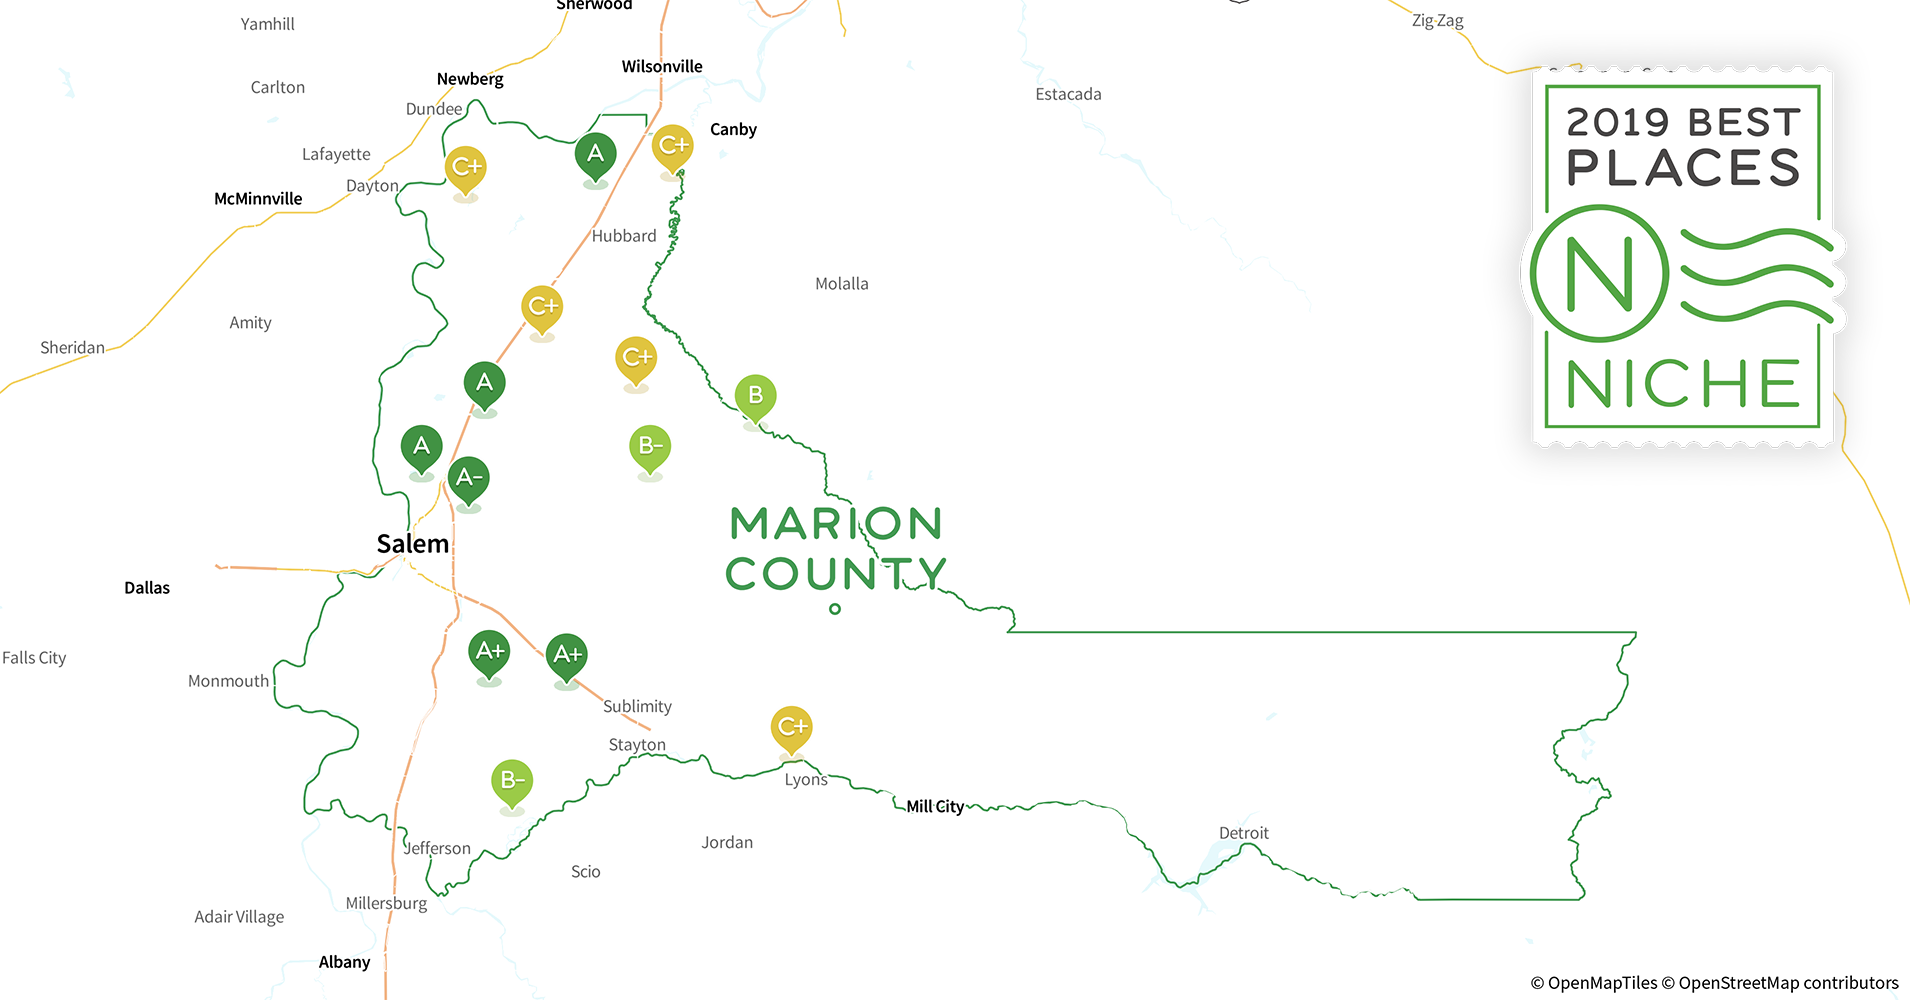 2019 Best Places To Live In Marion County Or Niche